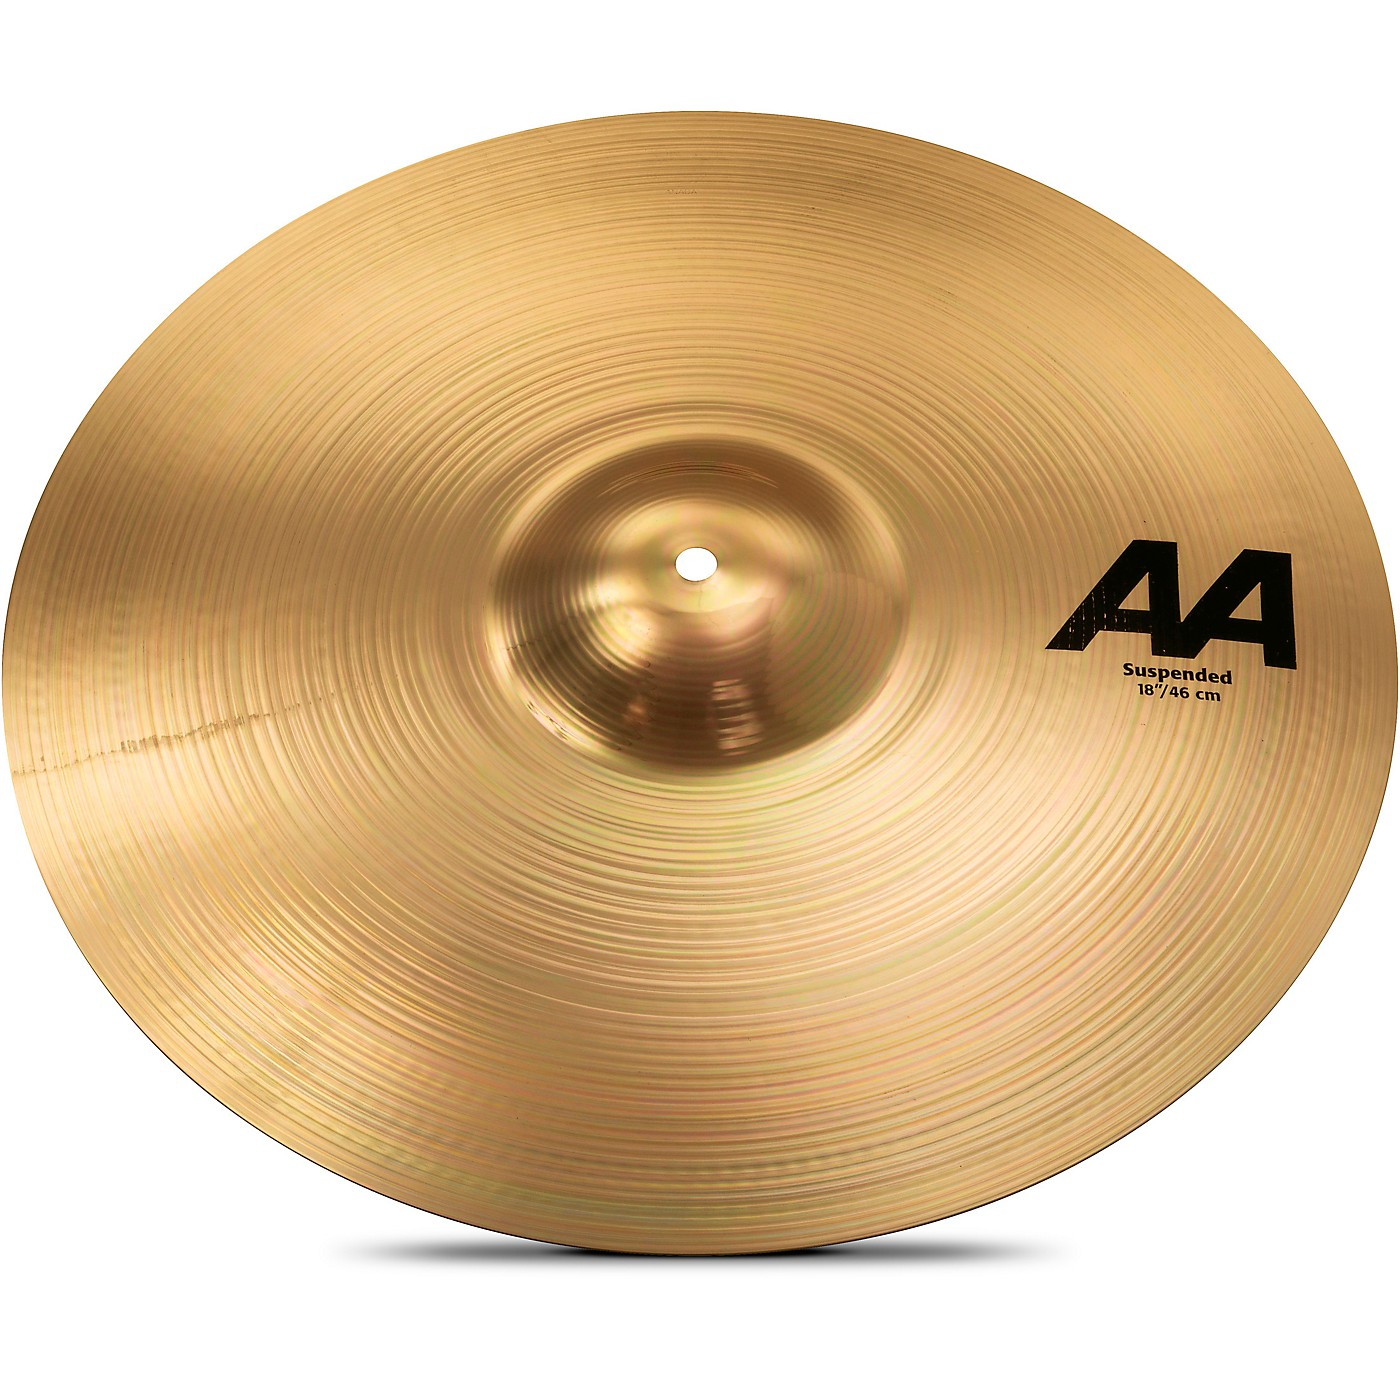 Sabian AA Suspended Orchestral thumbnail